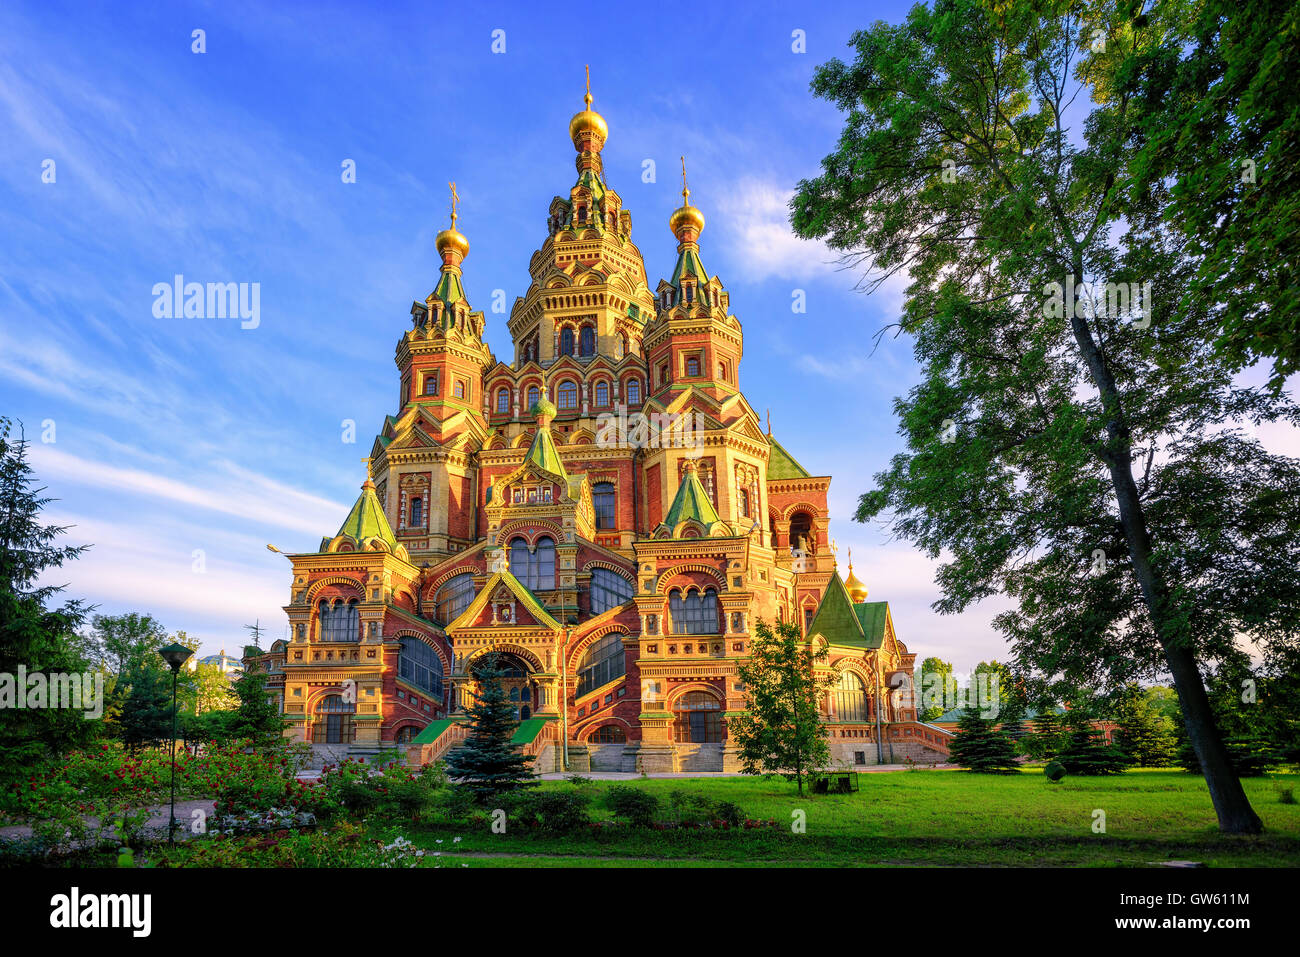 St Peter and Paul cathedral is a traditional russian orthodox church, Peterhof, St Petersburg, Russia - Stock Image